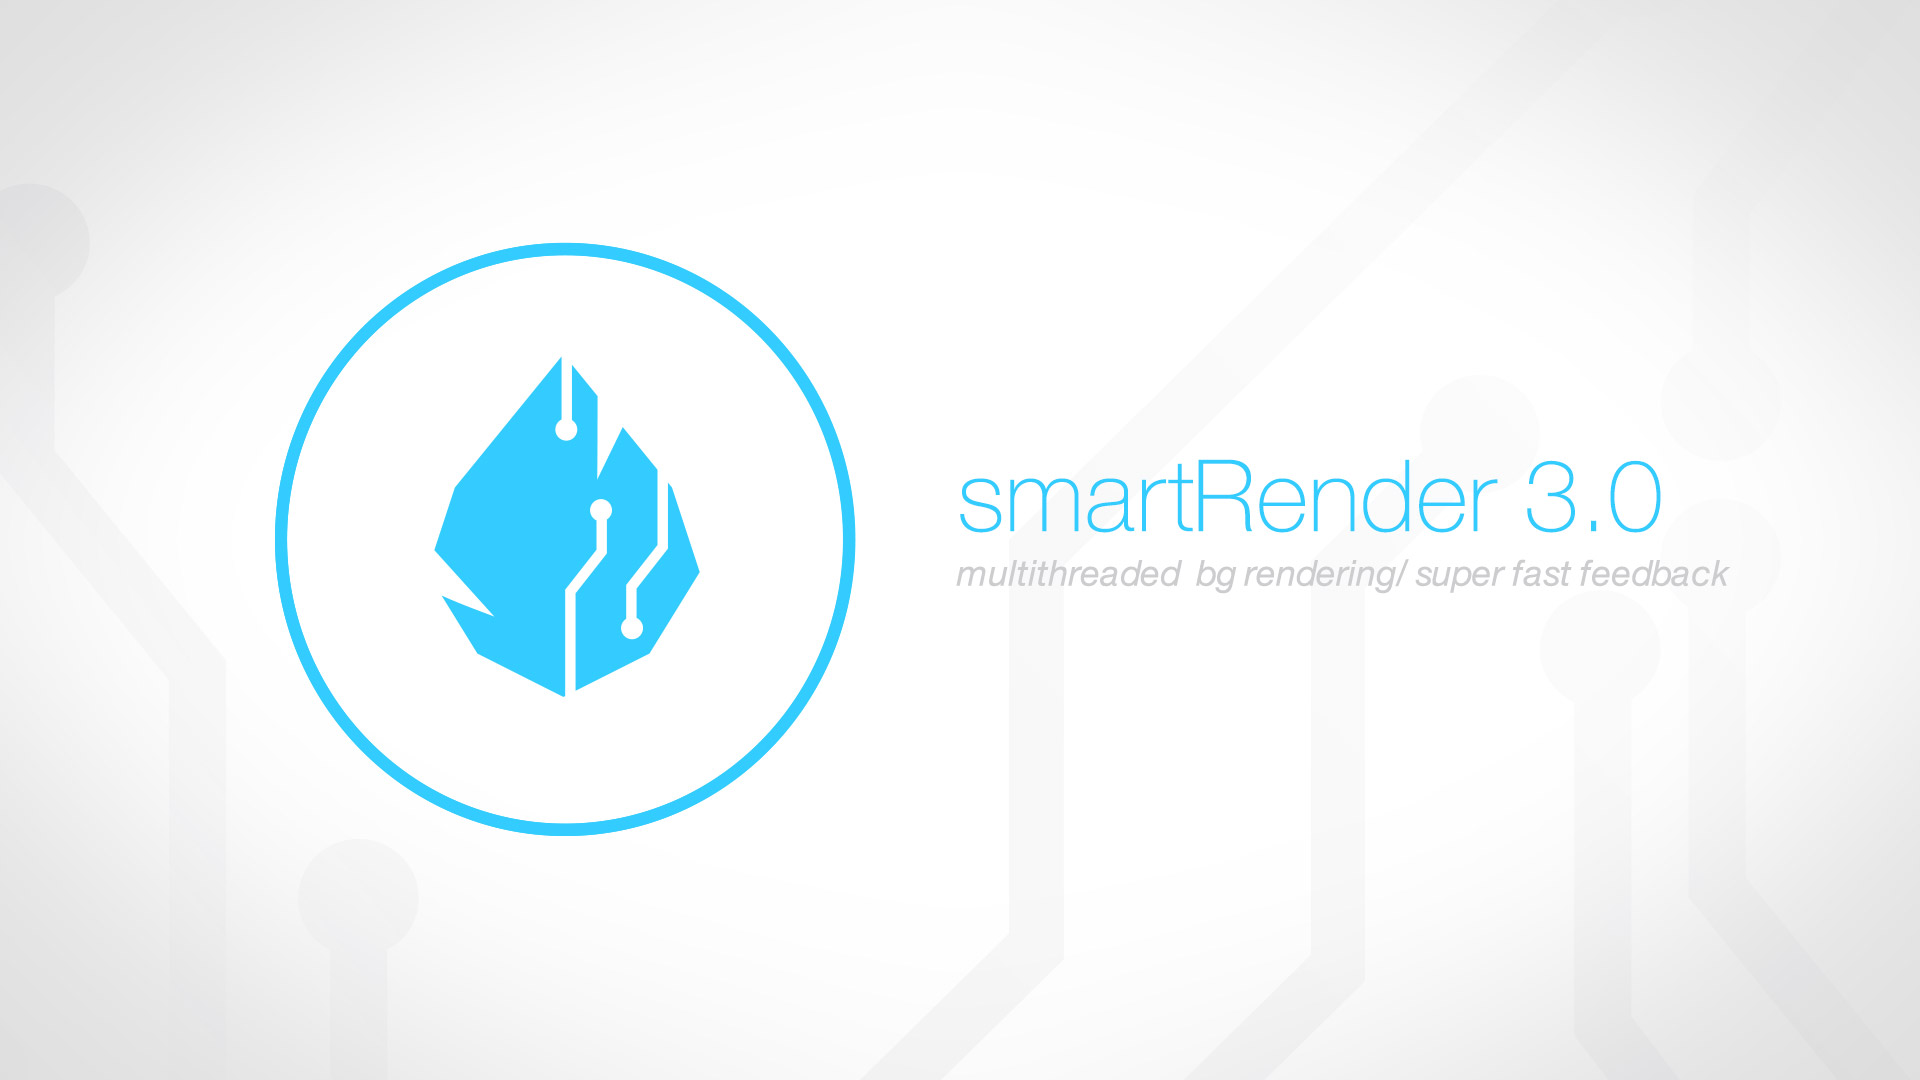 Published smartRender 3.0